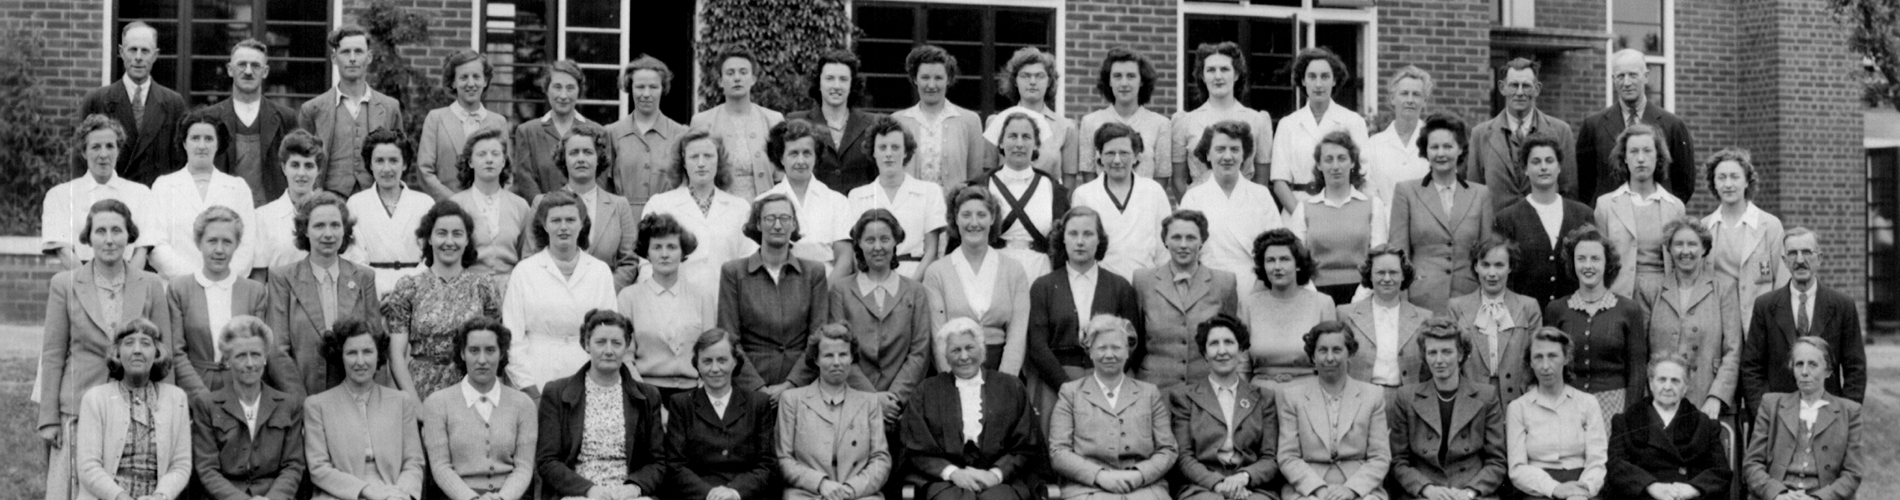 Ashford School Staff May 1948